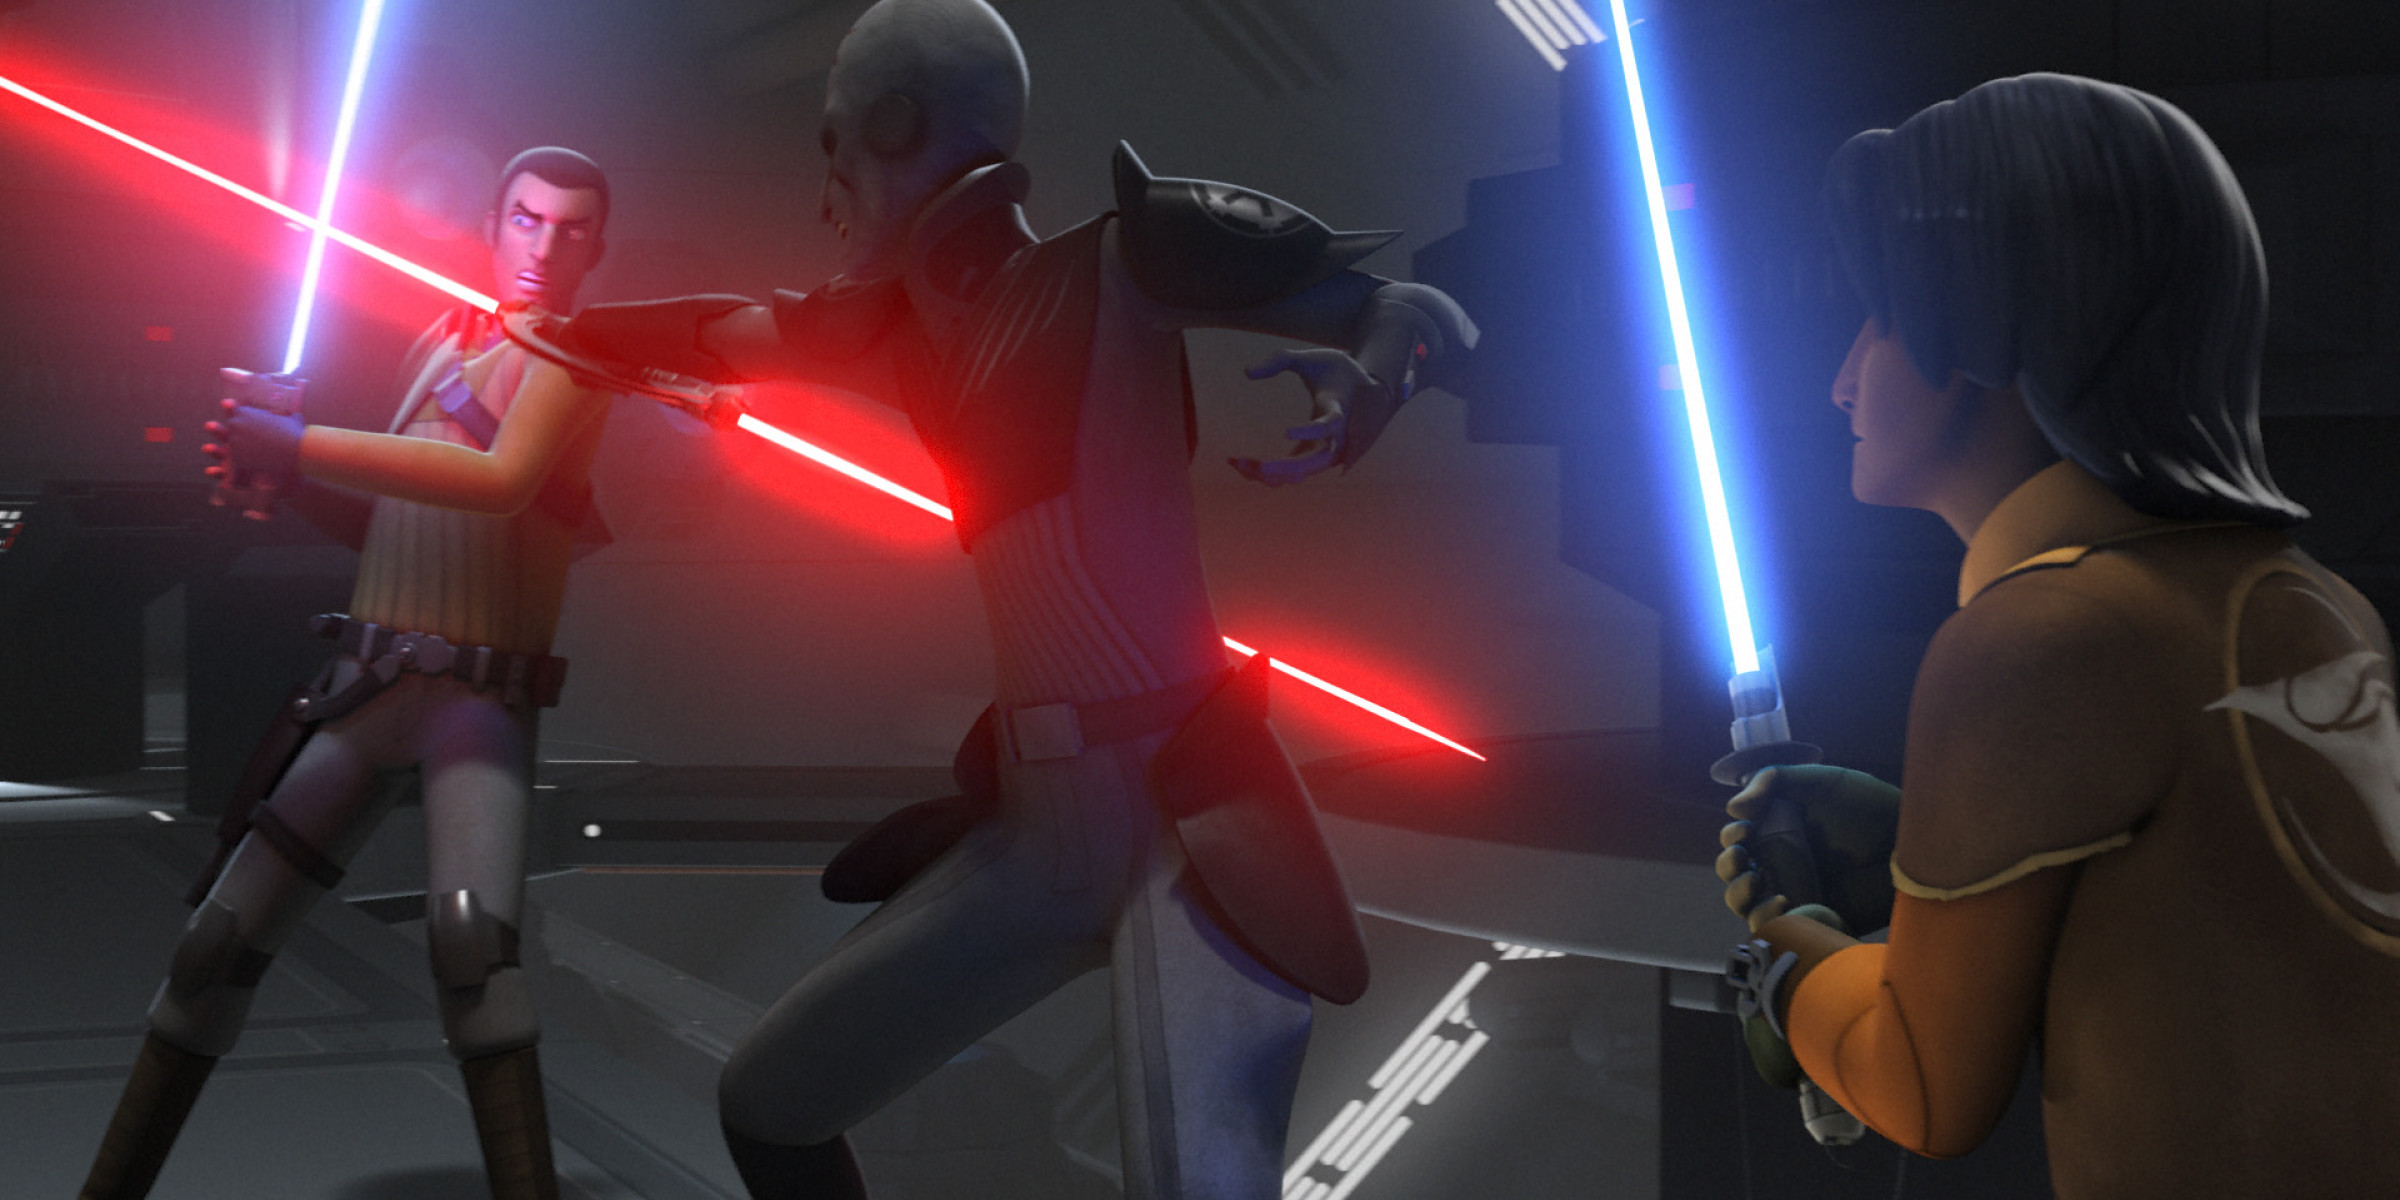 Kanan and Ezra versus the Inquisitor